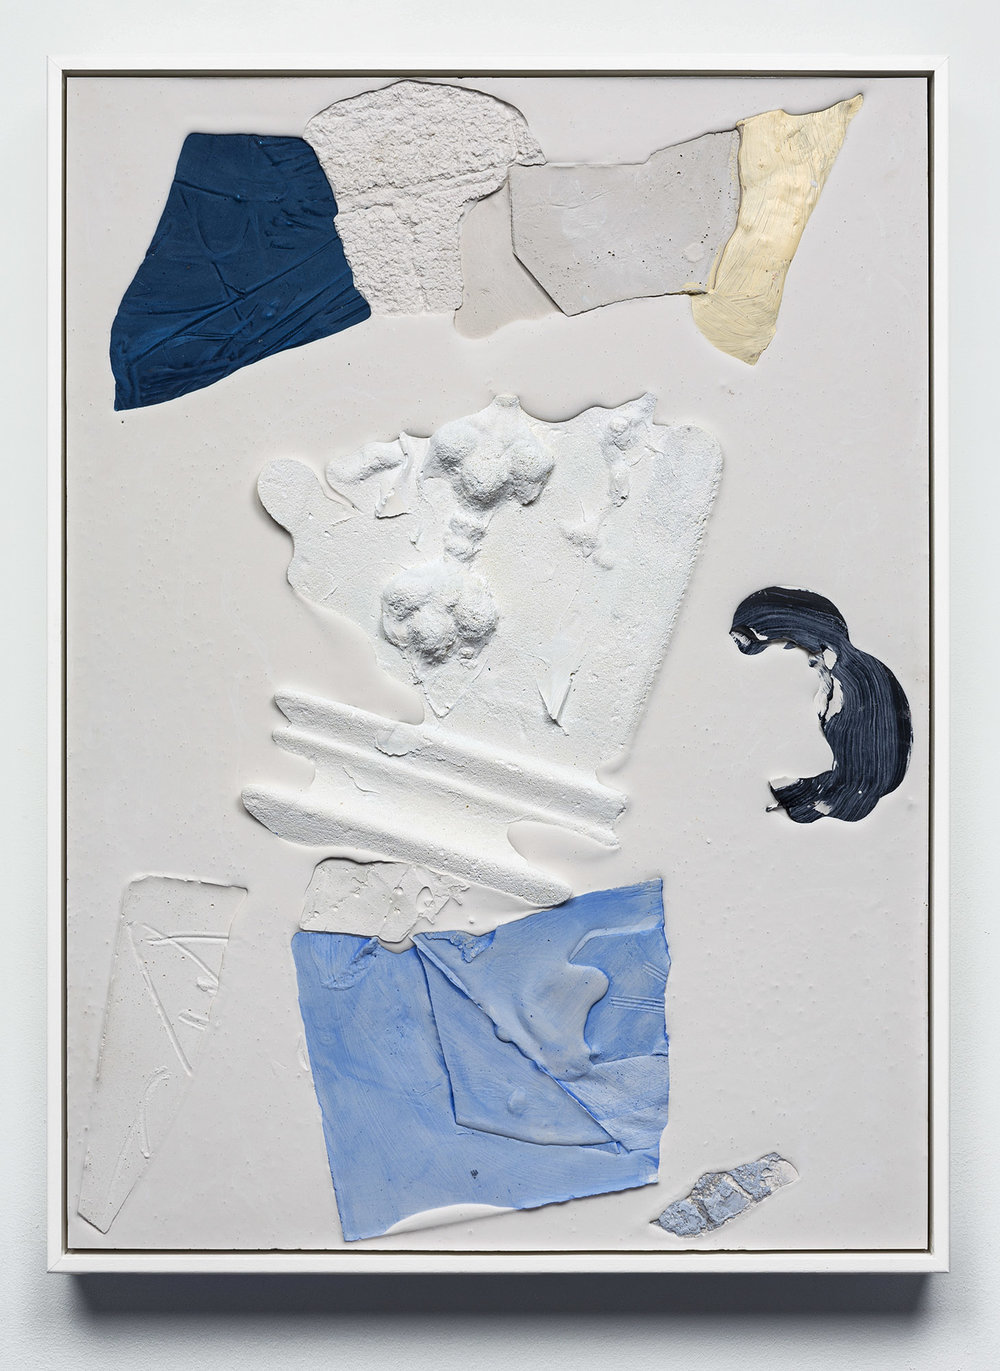 Mason Kimber, Ivory/slide , 2018, acrylic, resin, synthetic polymer, gypsum and glass fibre on plywood, 65 x 44.7 x 4.5cm (framed); courtesy the artist, COMA Gallery, Sydney, and Sophie Gannon Gallery, Melbourne